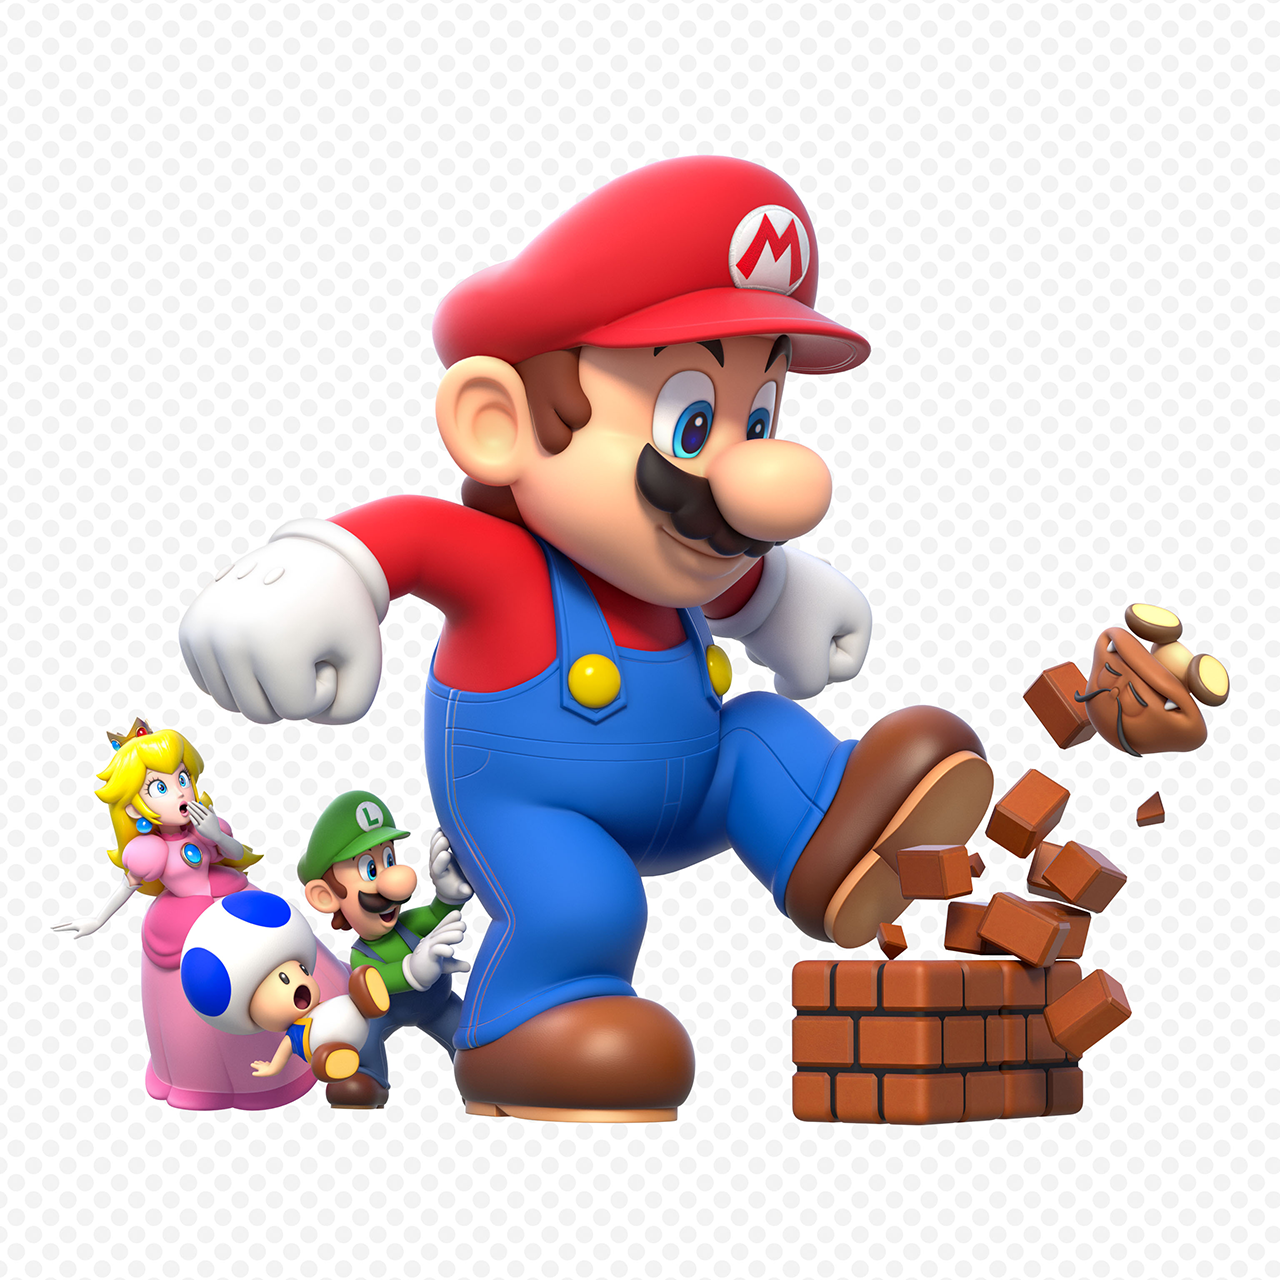 more official for mario 3d world